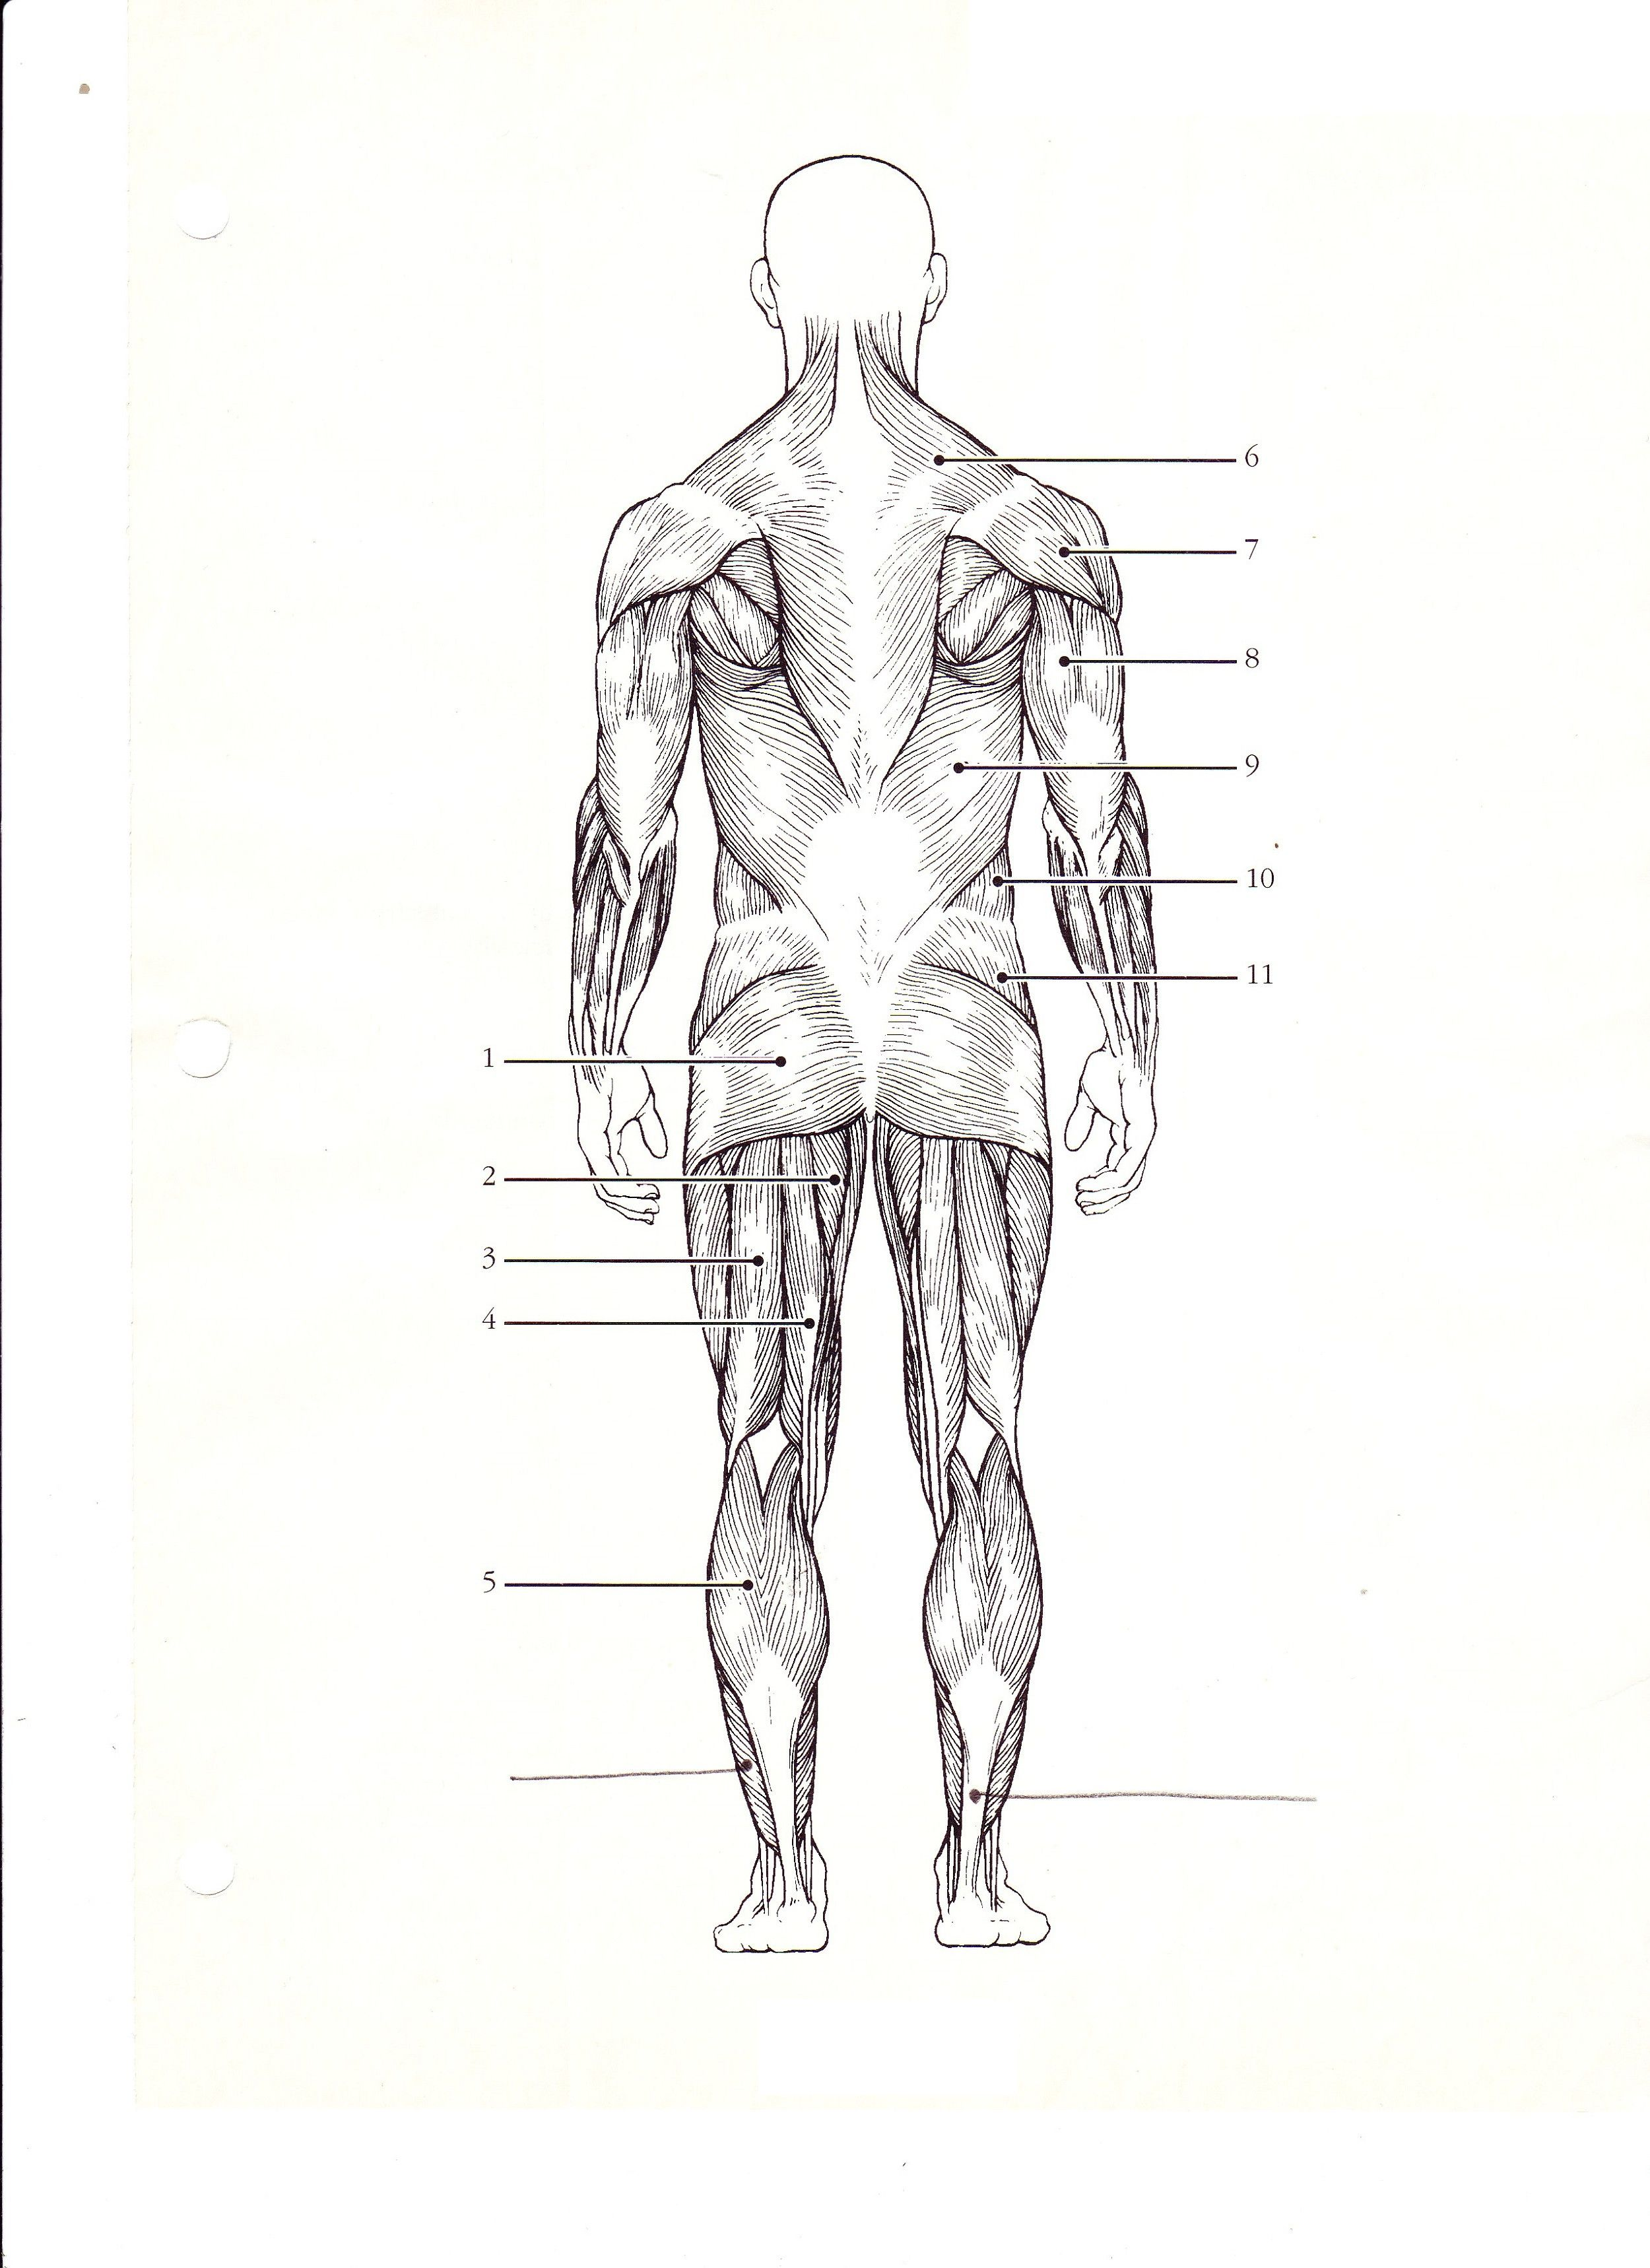 25 Diagram Of The Muscular System